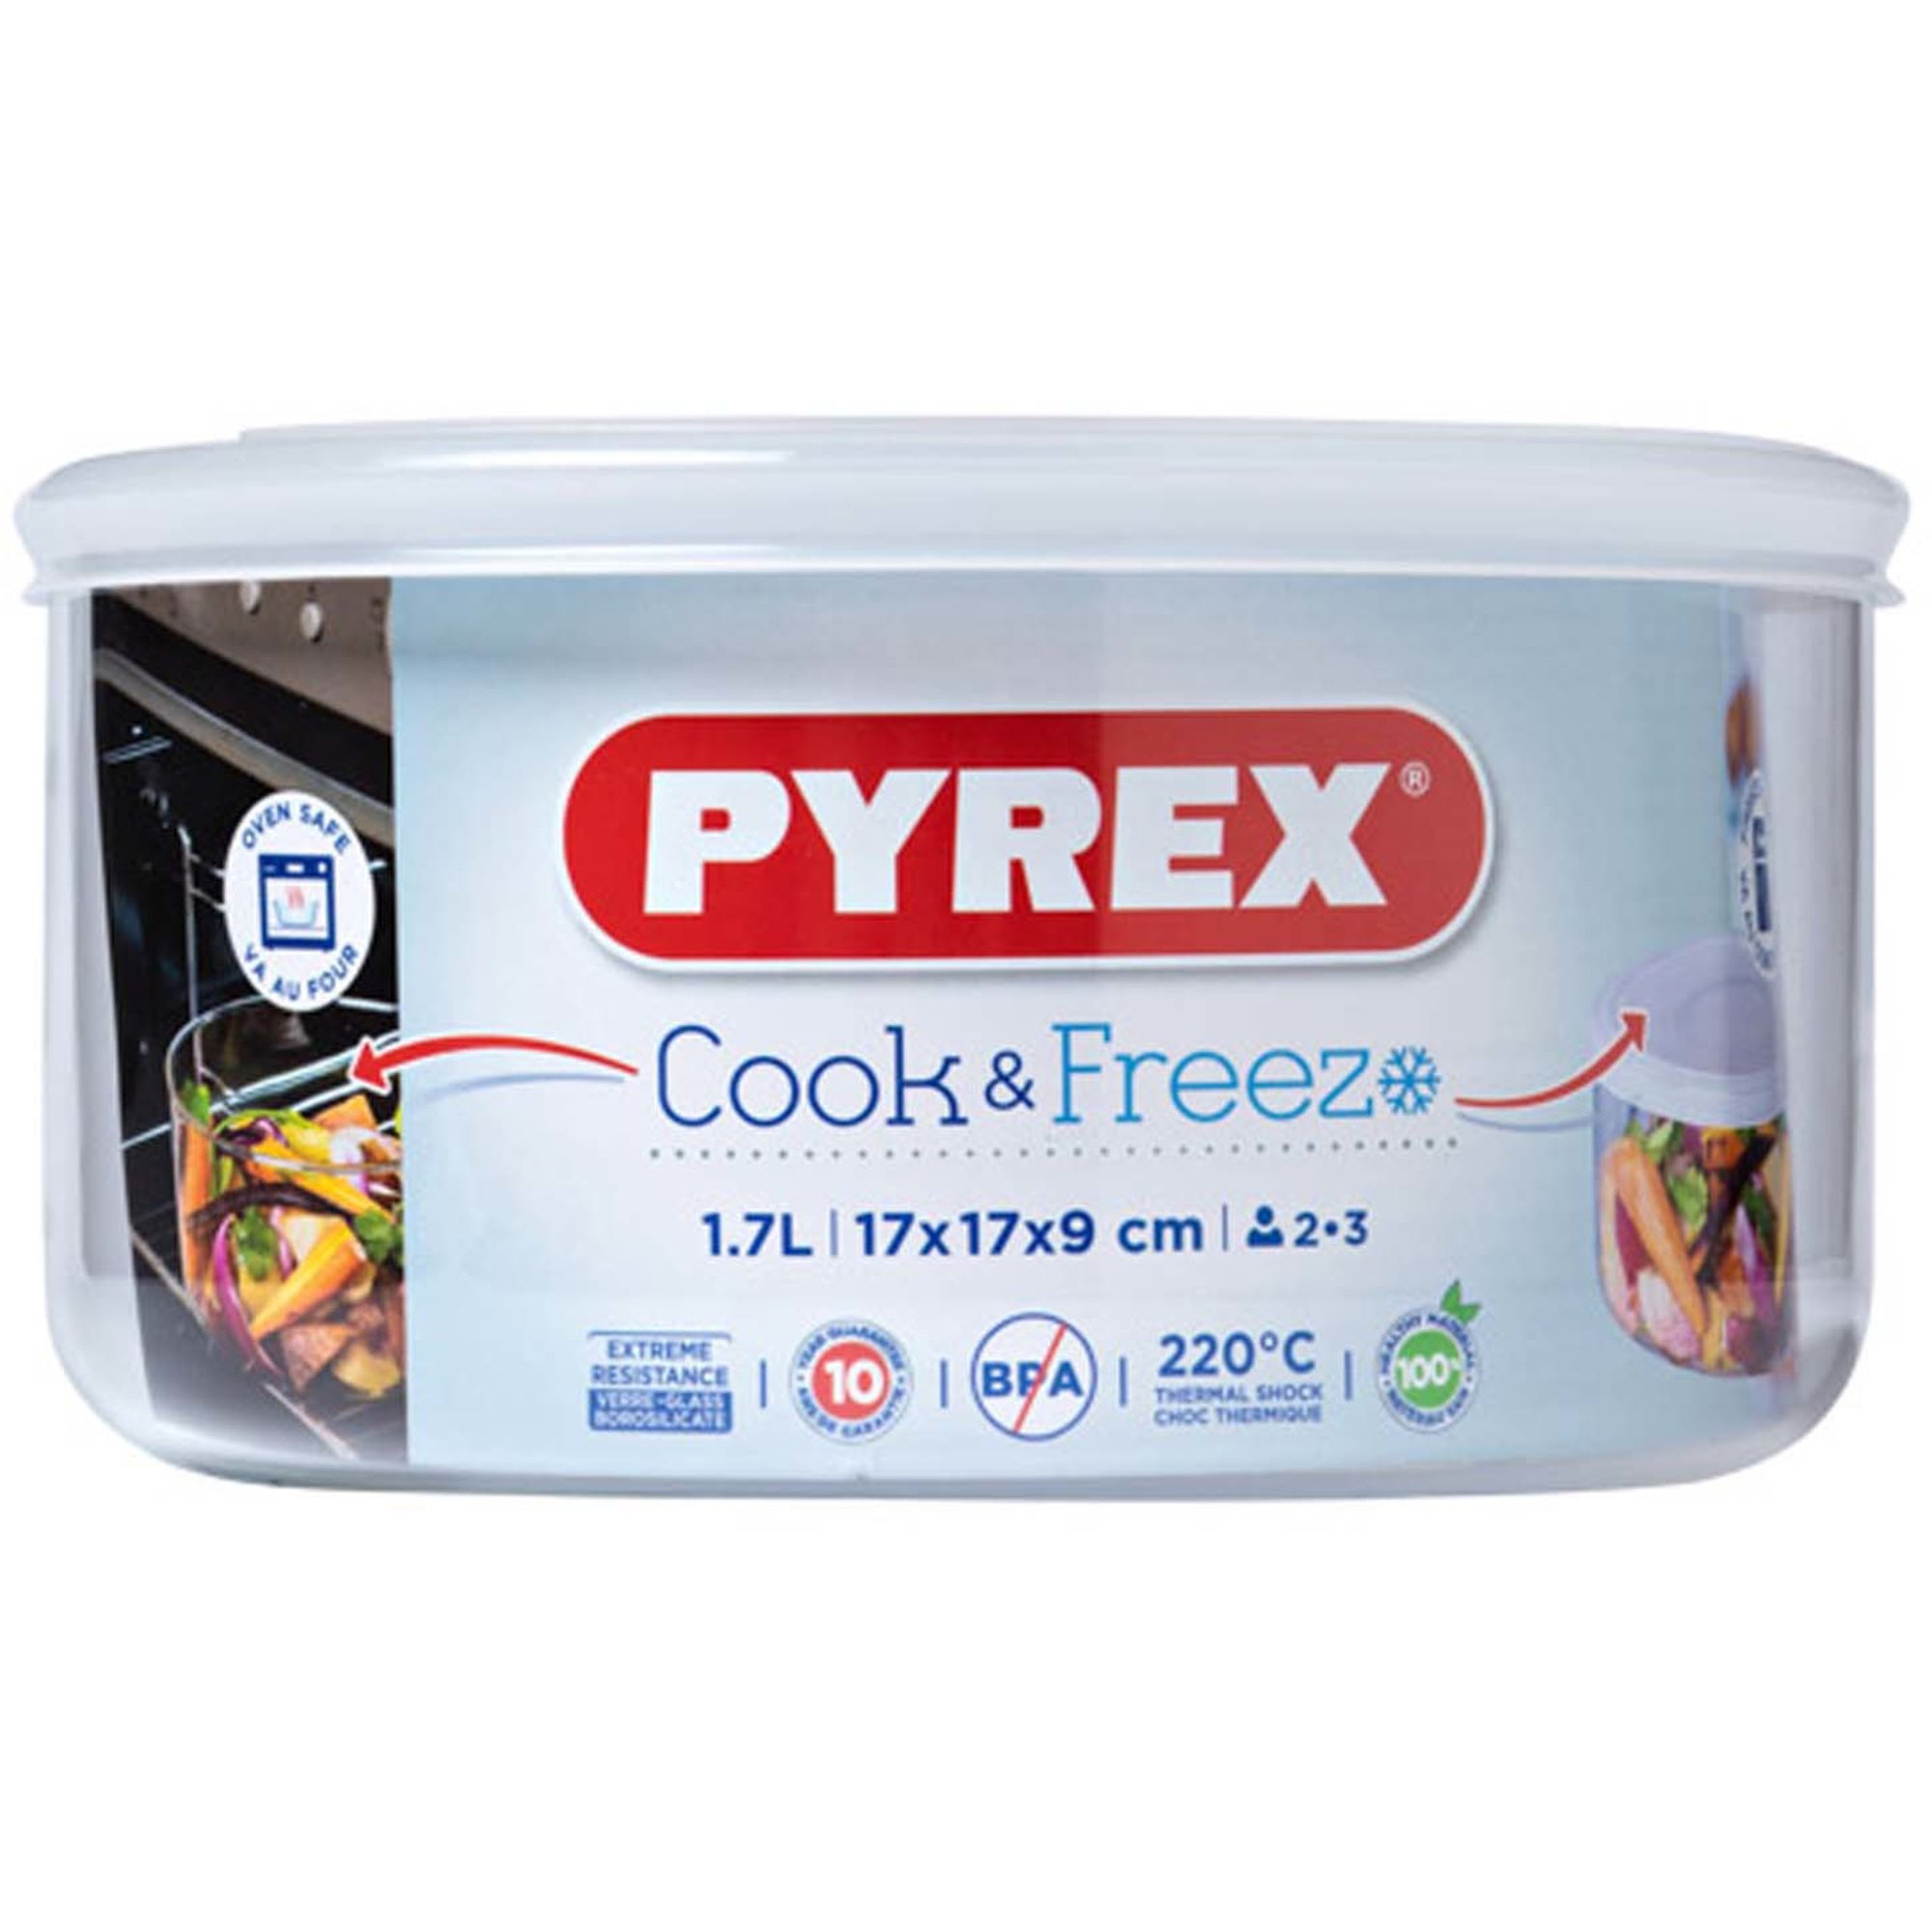 Pyrex Cook & Freeze Ugnsform med Lock/Matlåda 17×9 cm 17 l